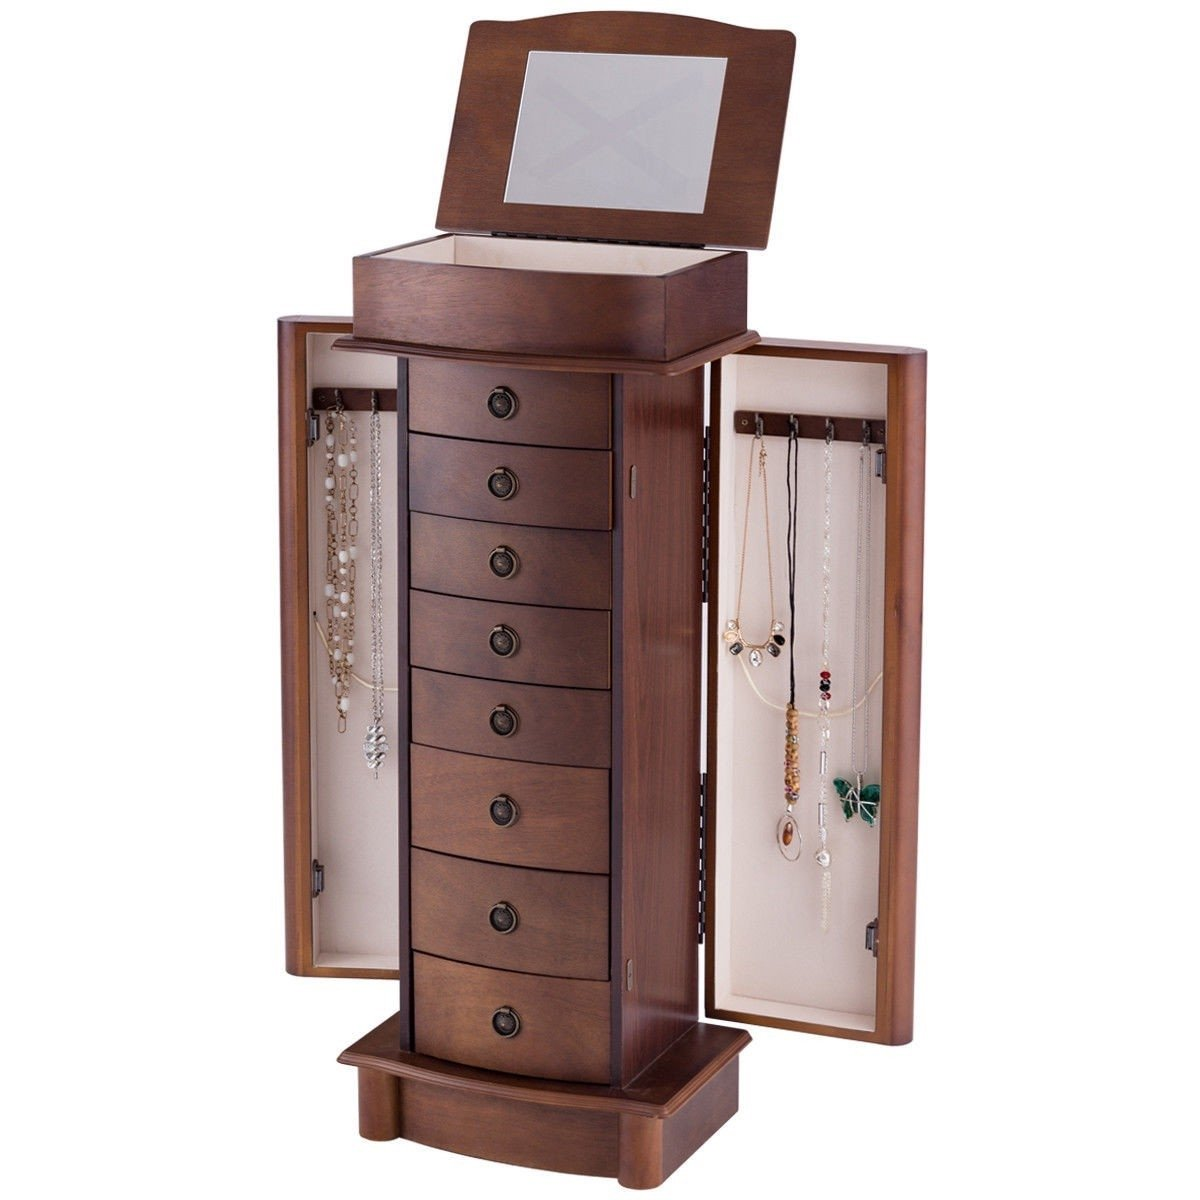 Brown Wood 8-Drawer Jewelry Armoire Chest Storage Cabinet with Mirror